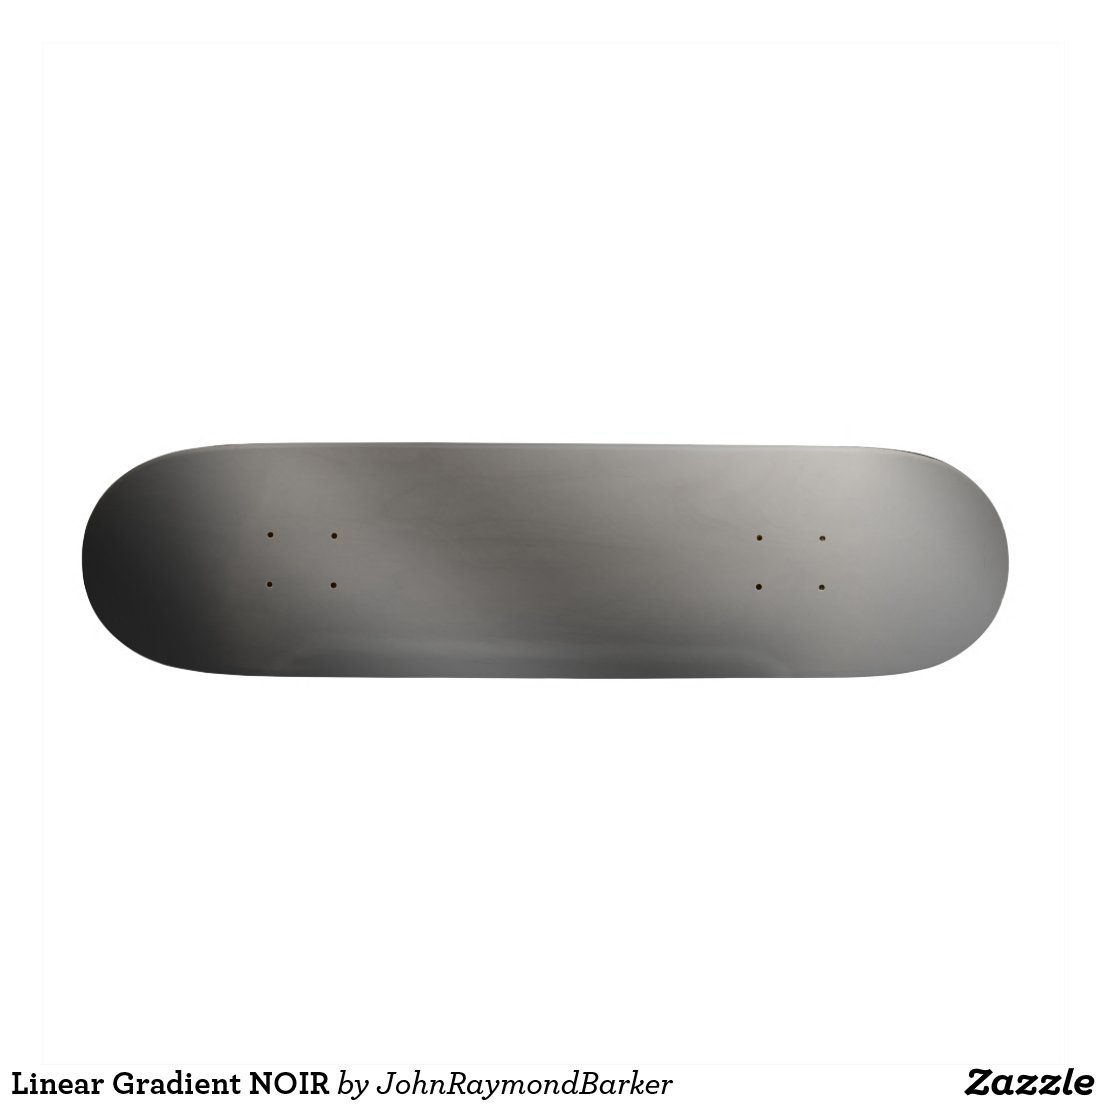 Linear Gradient NOIR Skateboard